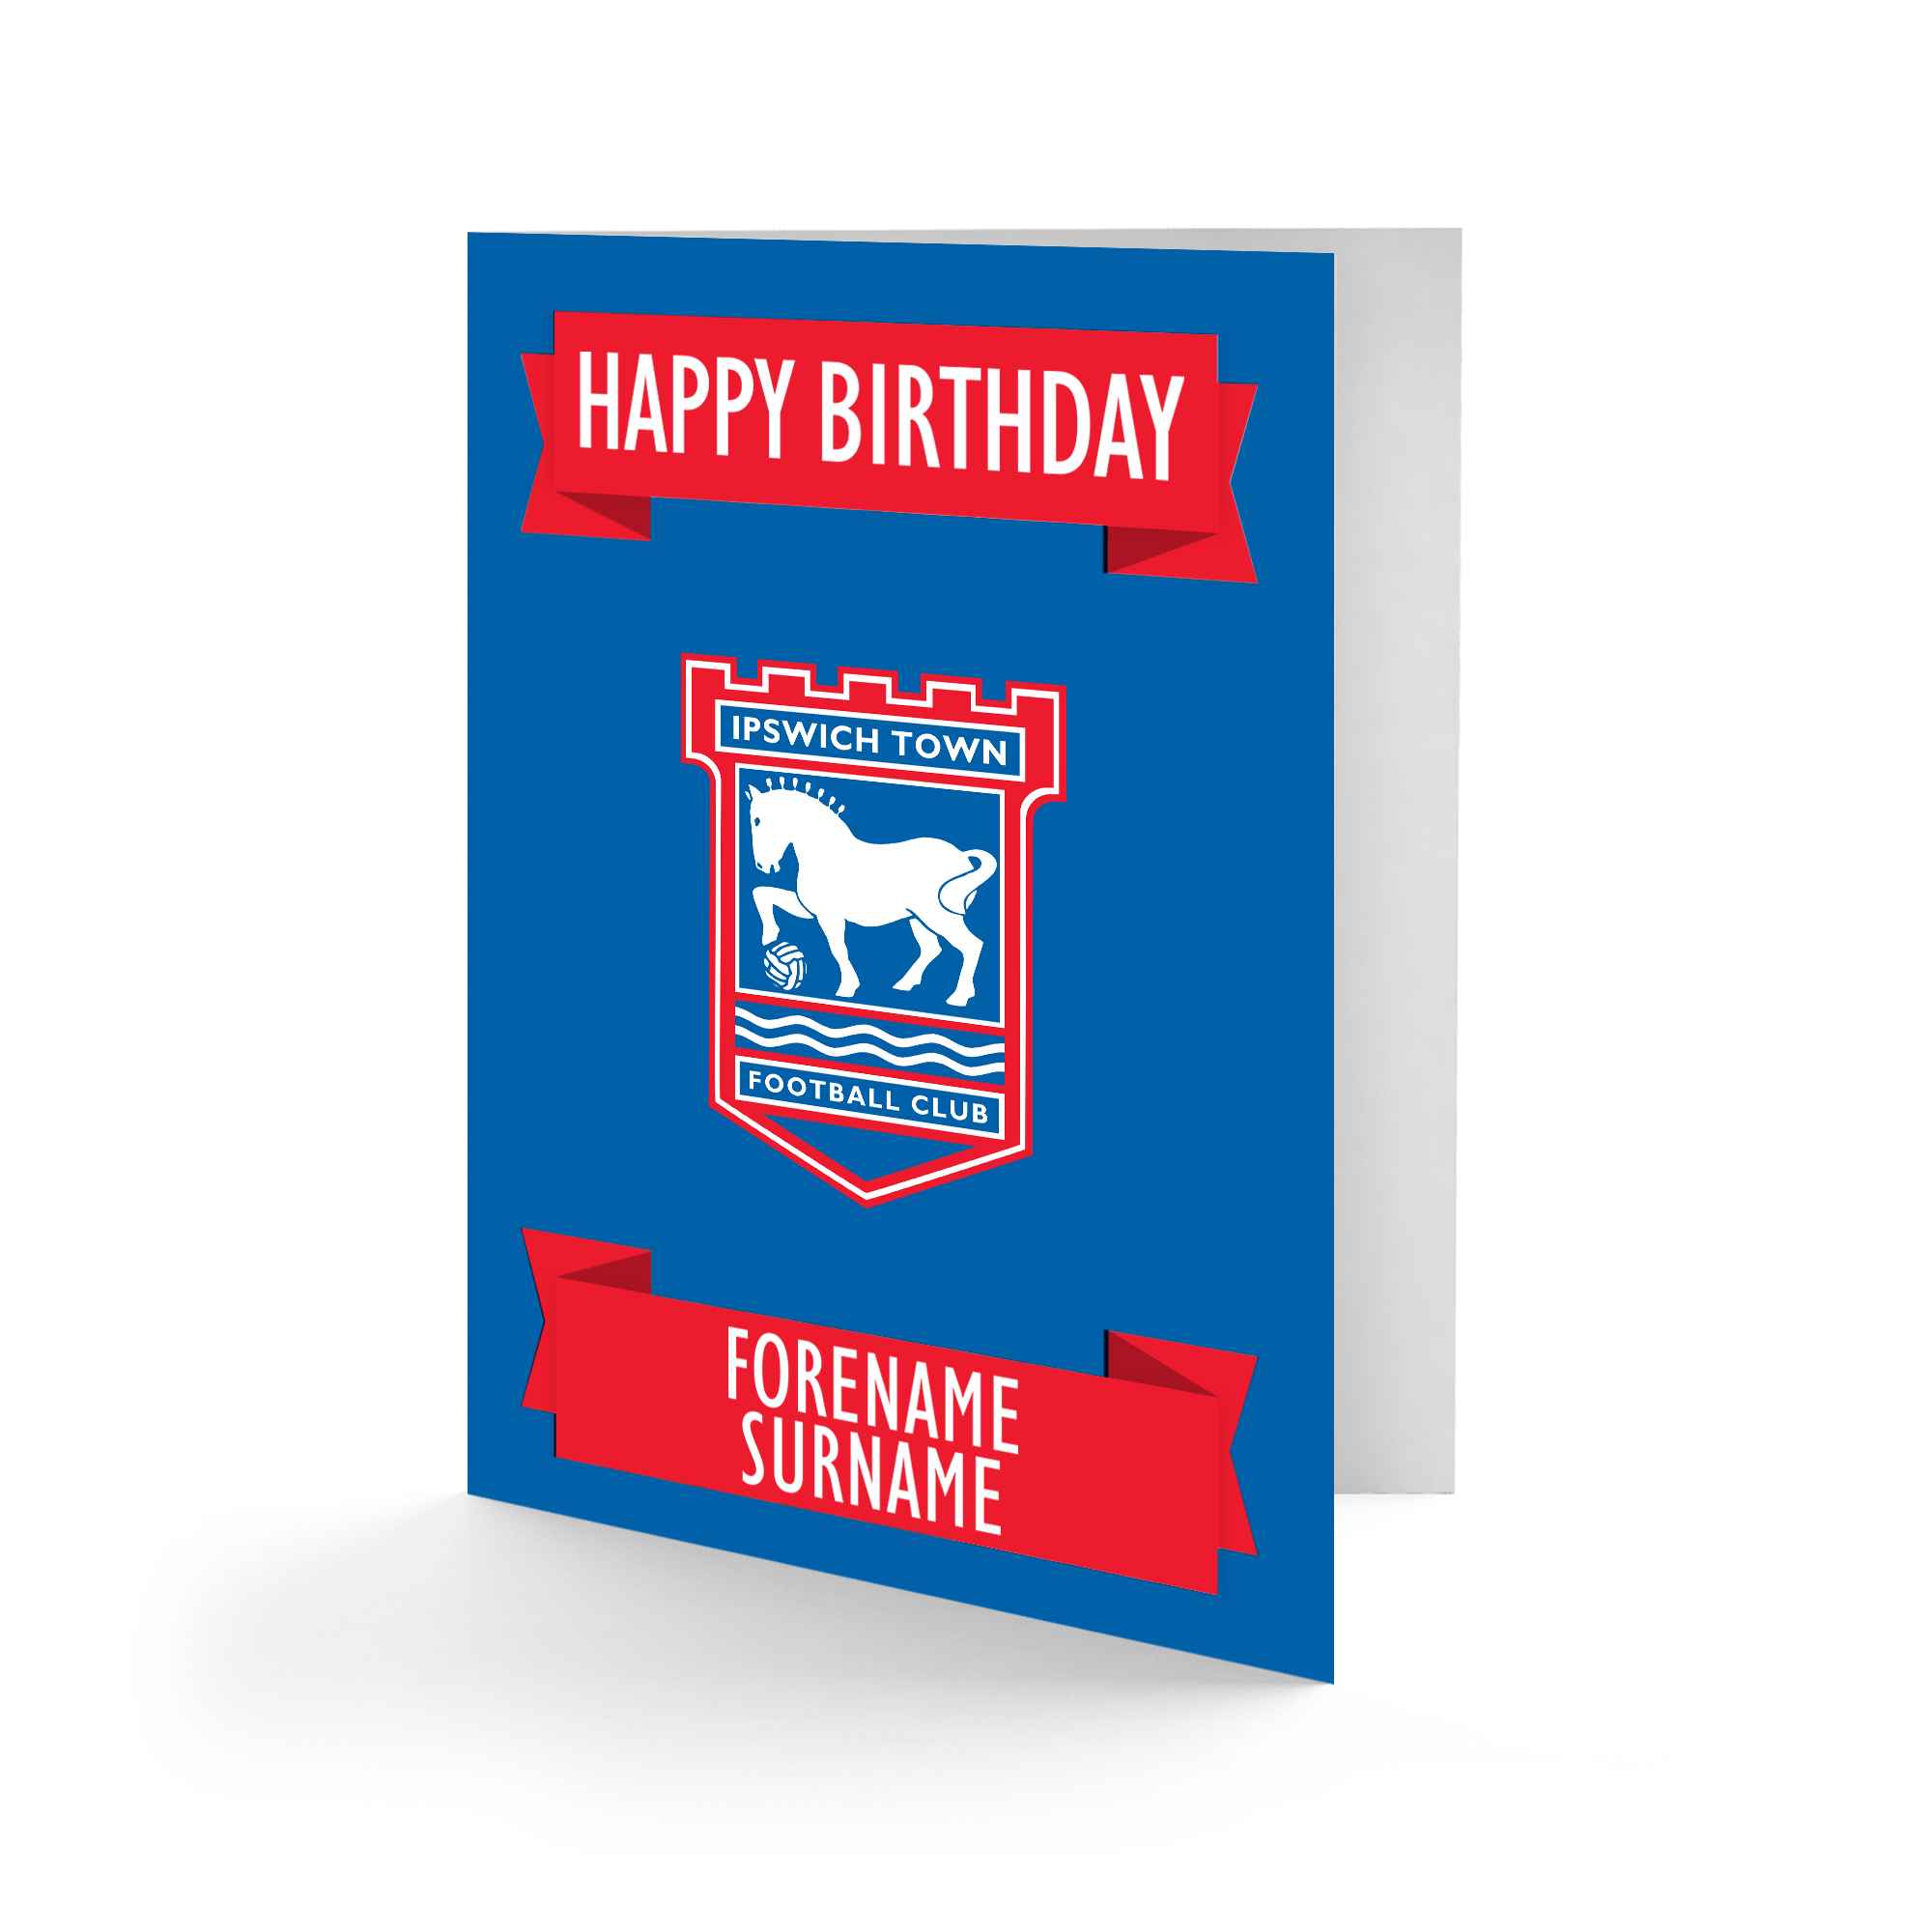 Ipswich Town FC Crest Birthday Card